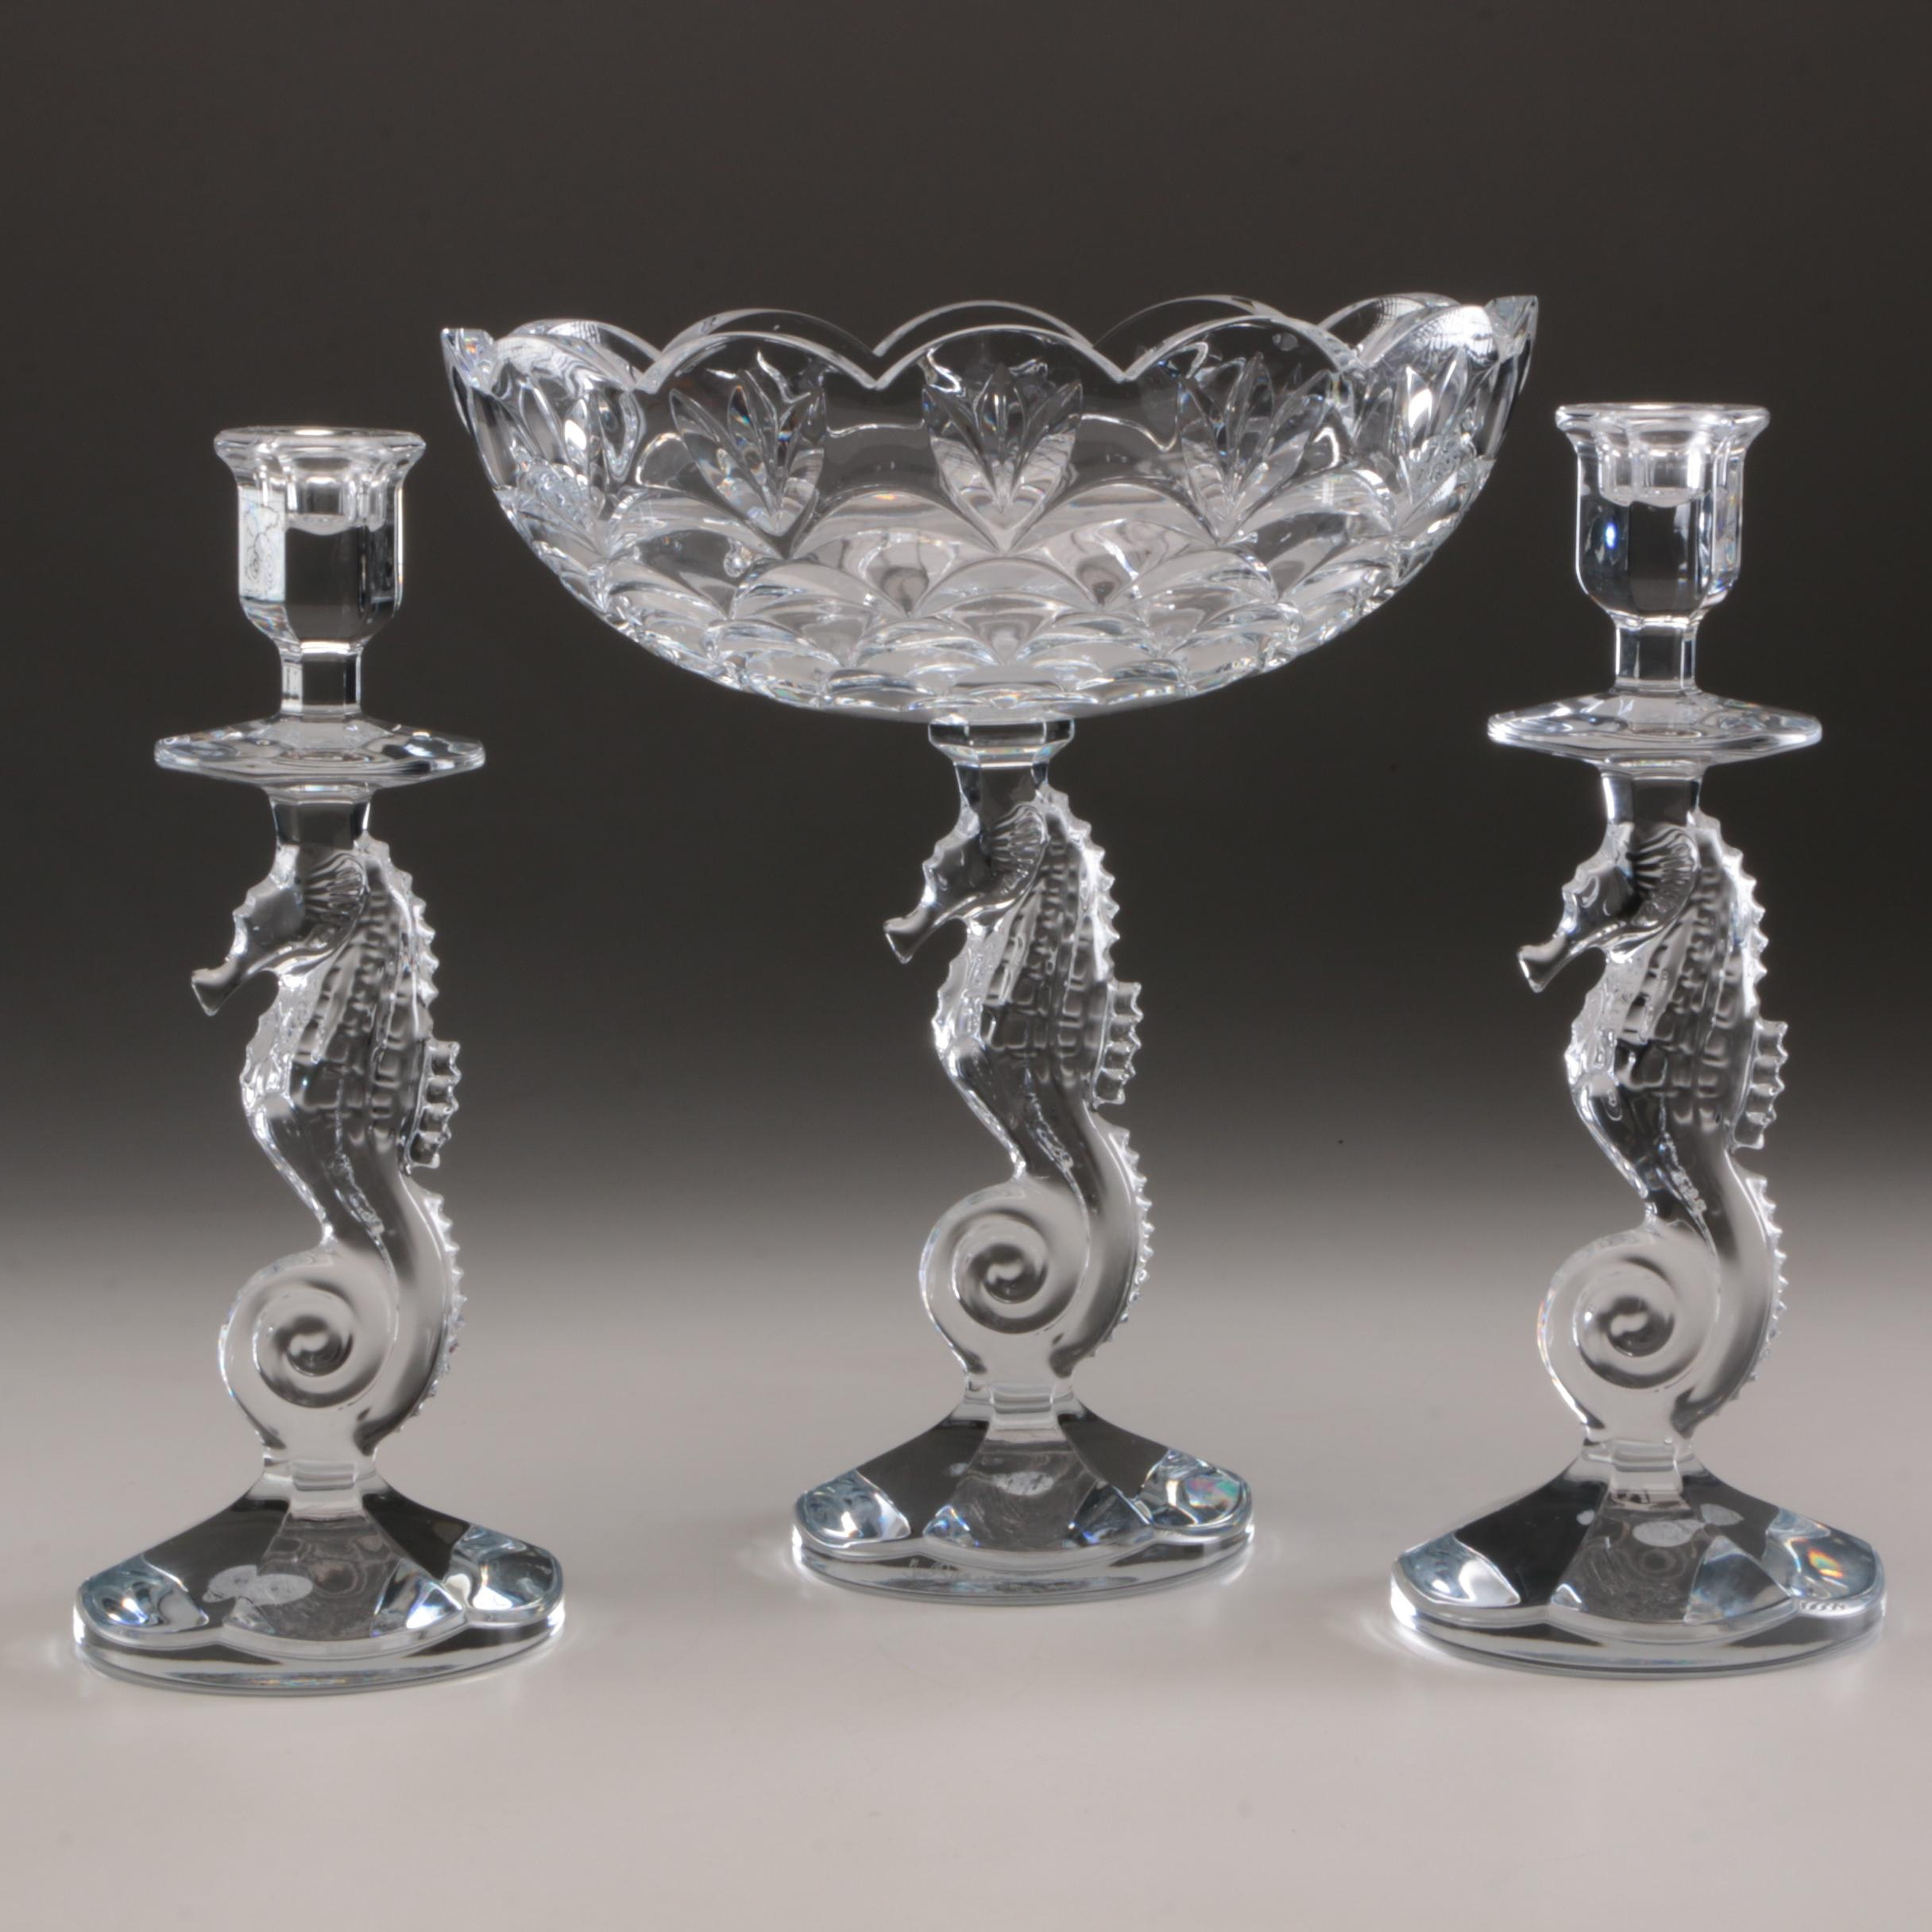 """Waterford Crystal """"Seahorse"""" Centerpiece Compote and Candlesticks"""